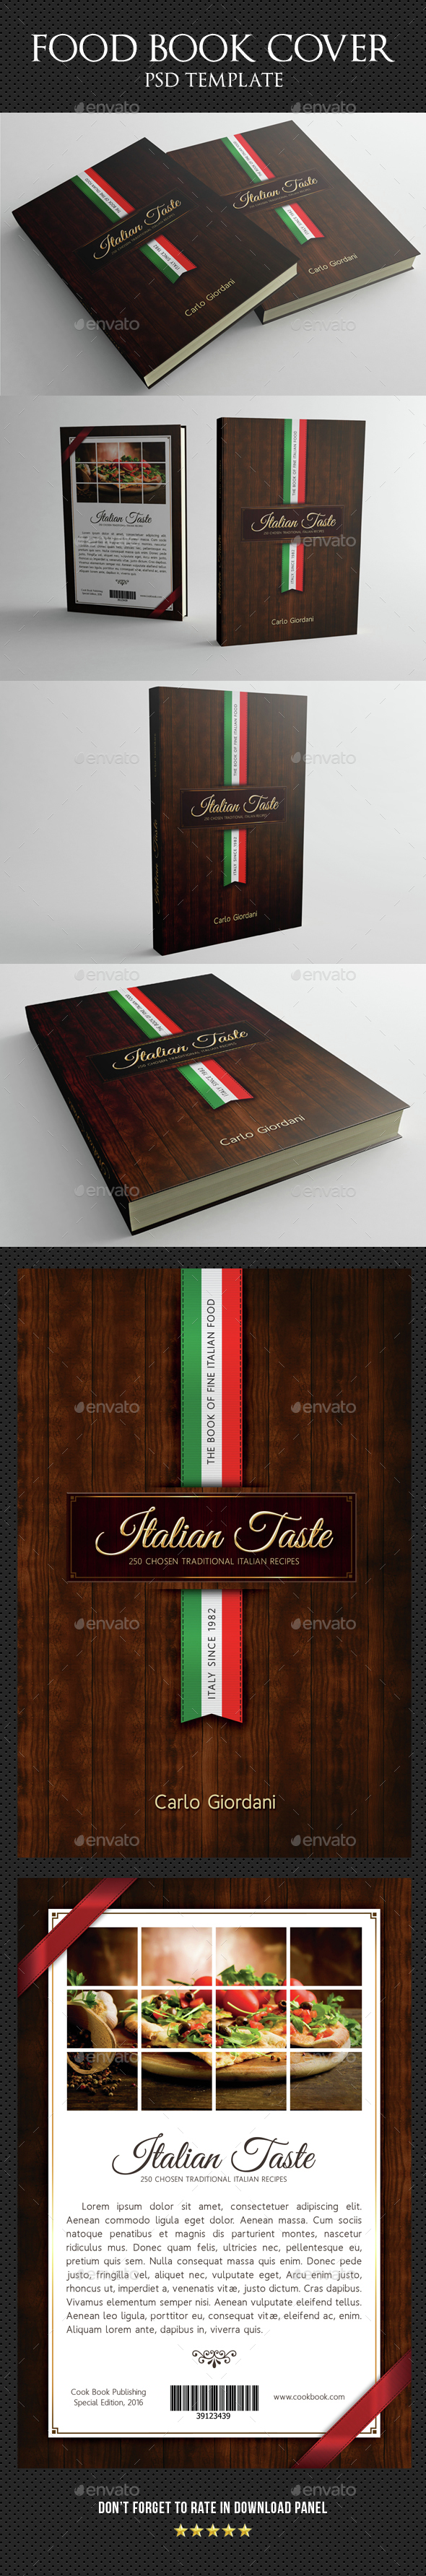 Italian Taste Book Cover Template - Miscellaneous Print Templates